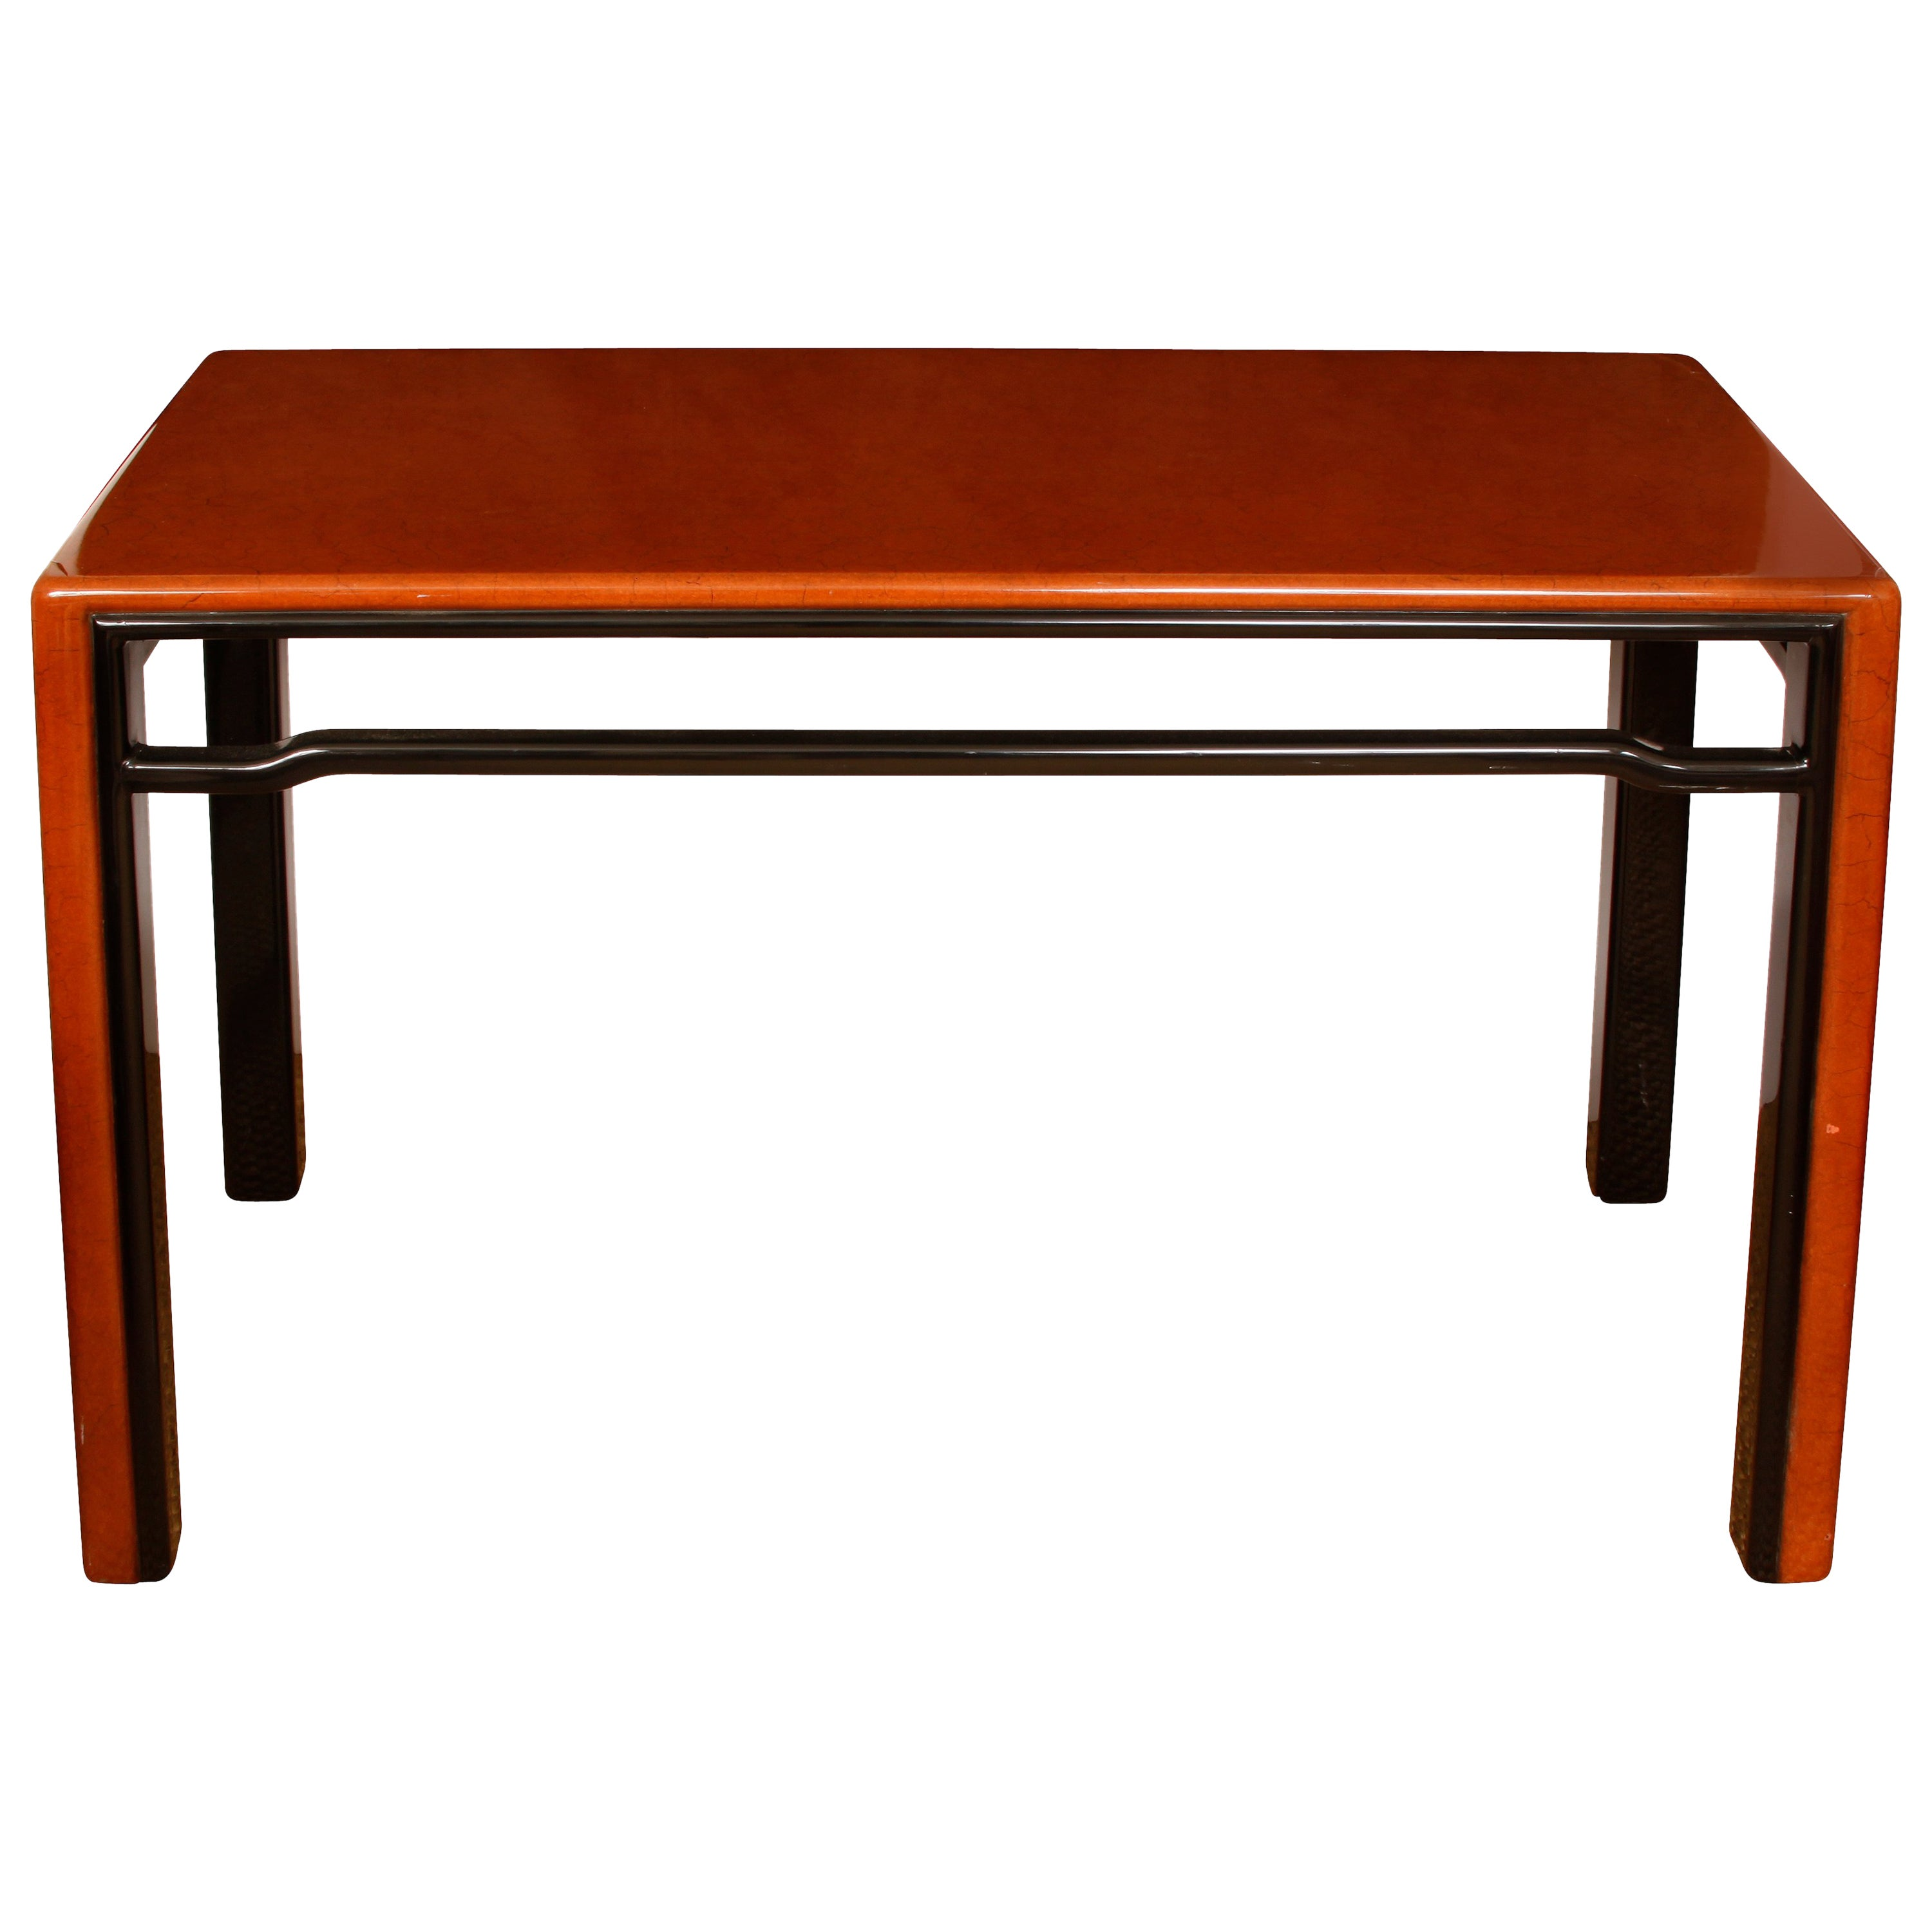 Two-Tone Lacquered Console